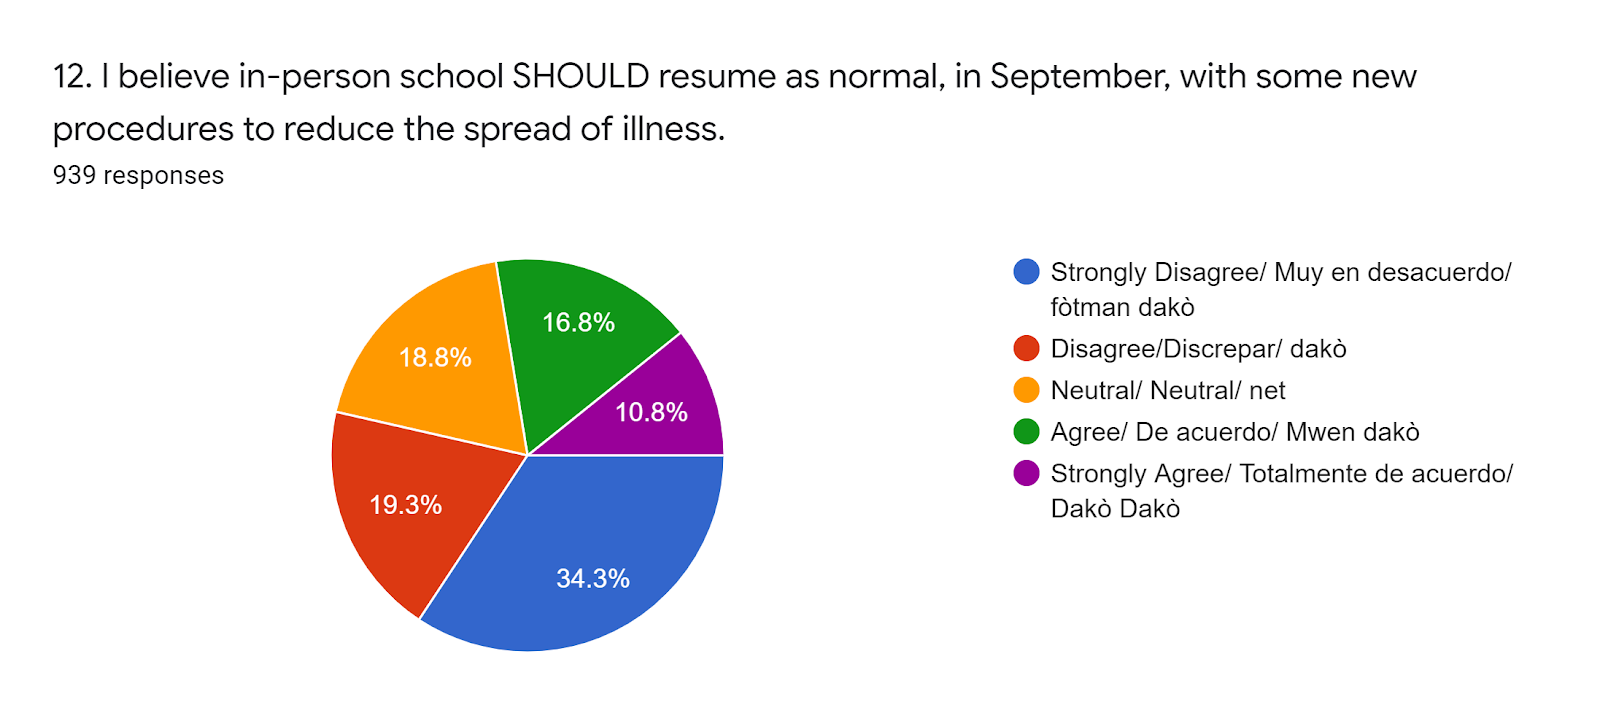 Forms response chart. Question title: 12. I believe in-person school SHOULD resume as normal, in September, with some new procedures to reduce the spread of illness.. Number of responses: 939 responses.